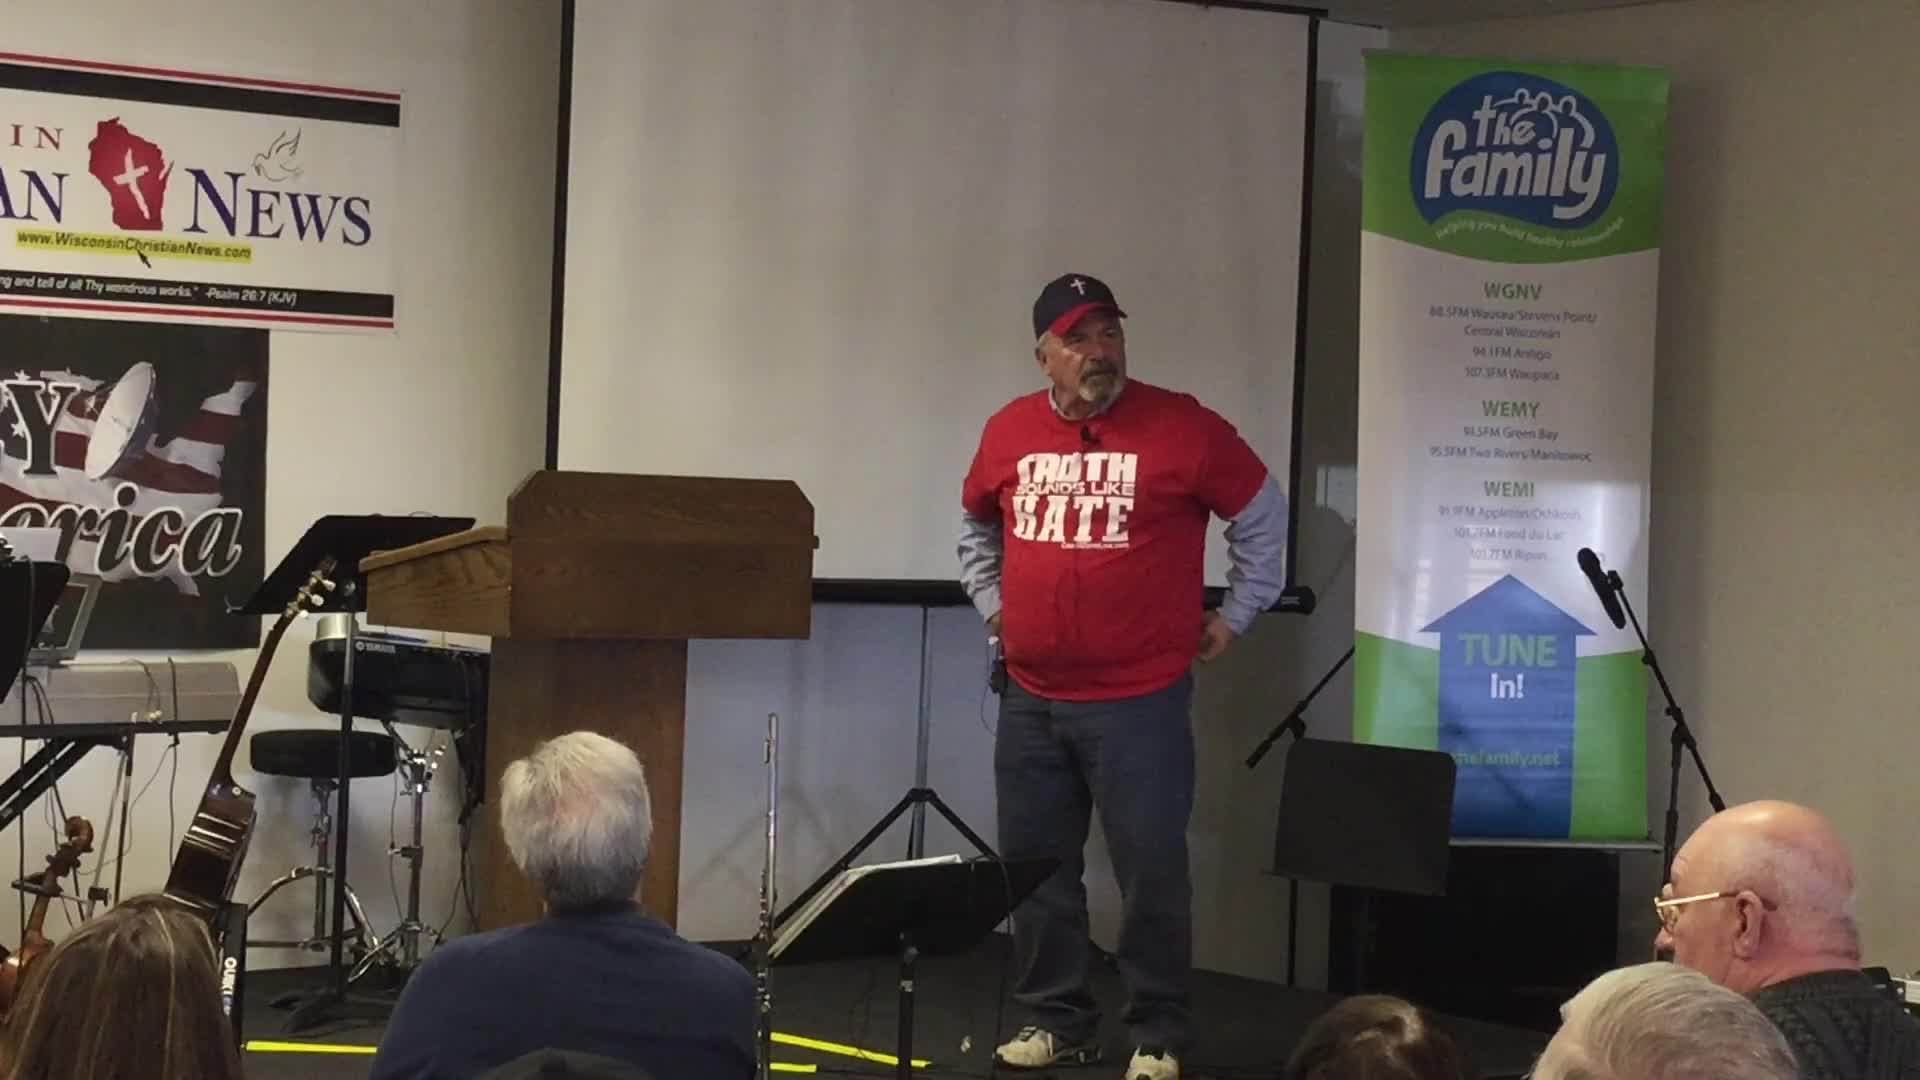 Coach Dave Daubenmire At 2017 Wisconsin Christian News Ministry Expo and Conference